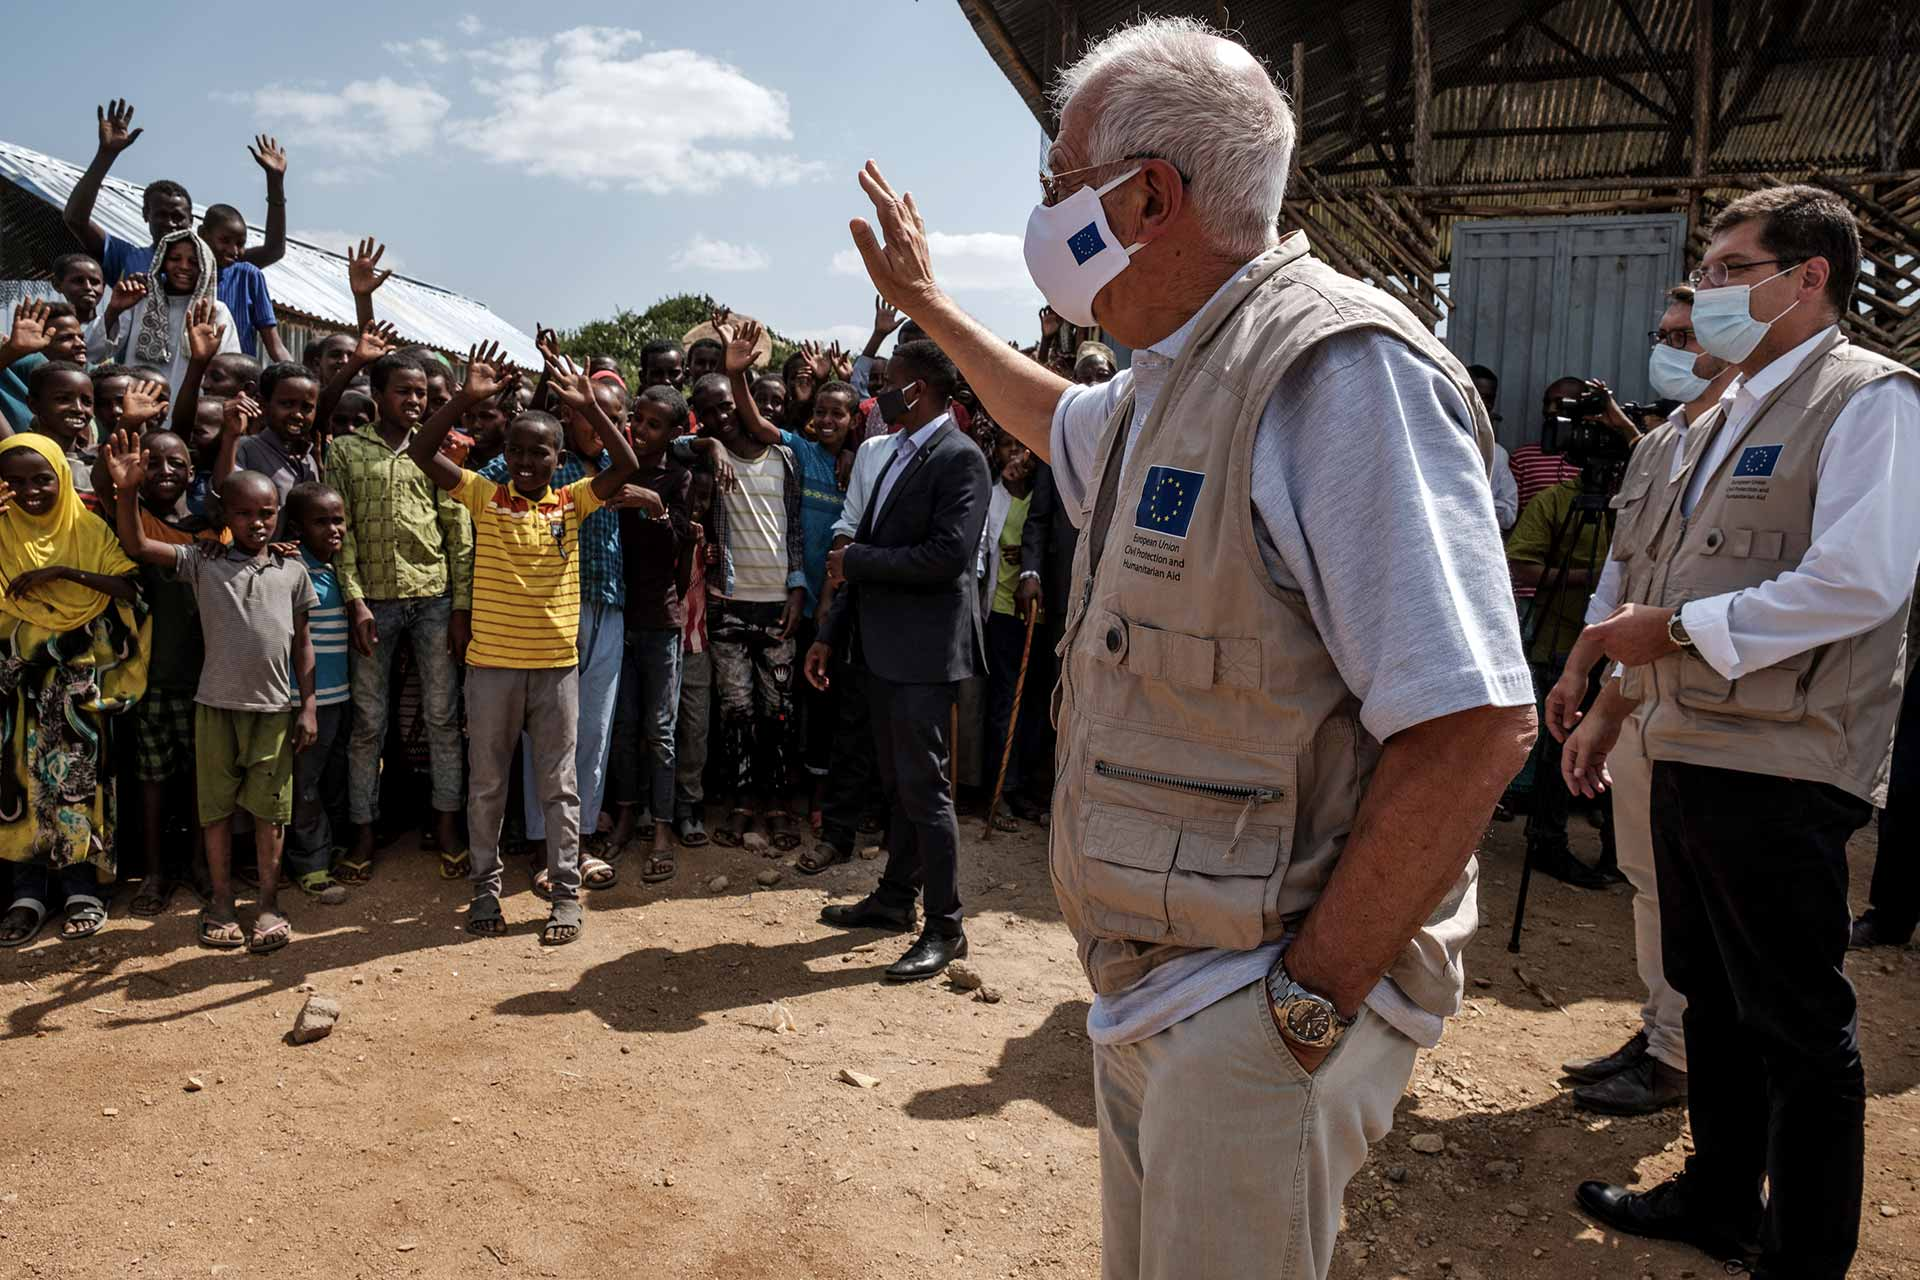 Africa: Josep Borrel, in the center, and Janez Lenarčič, on the right, greet the communities during a visit to the Qoloji Camp for Internally Displaced People, Ethiopia